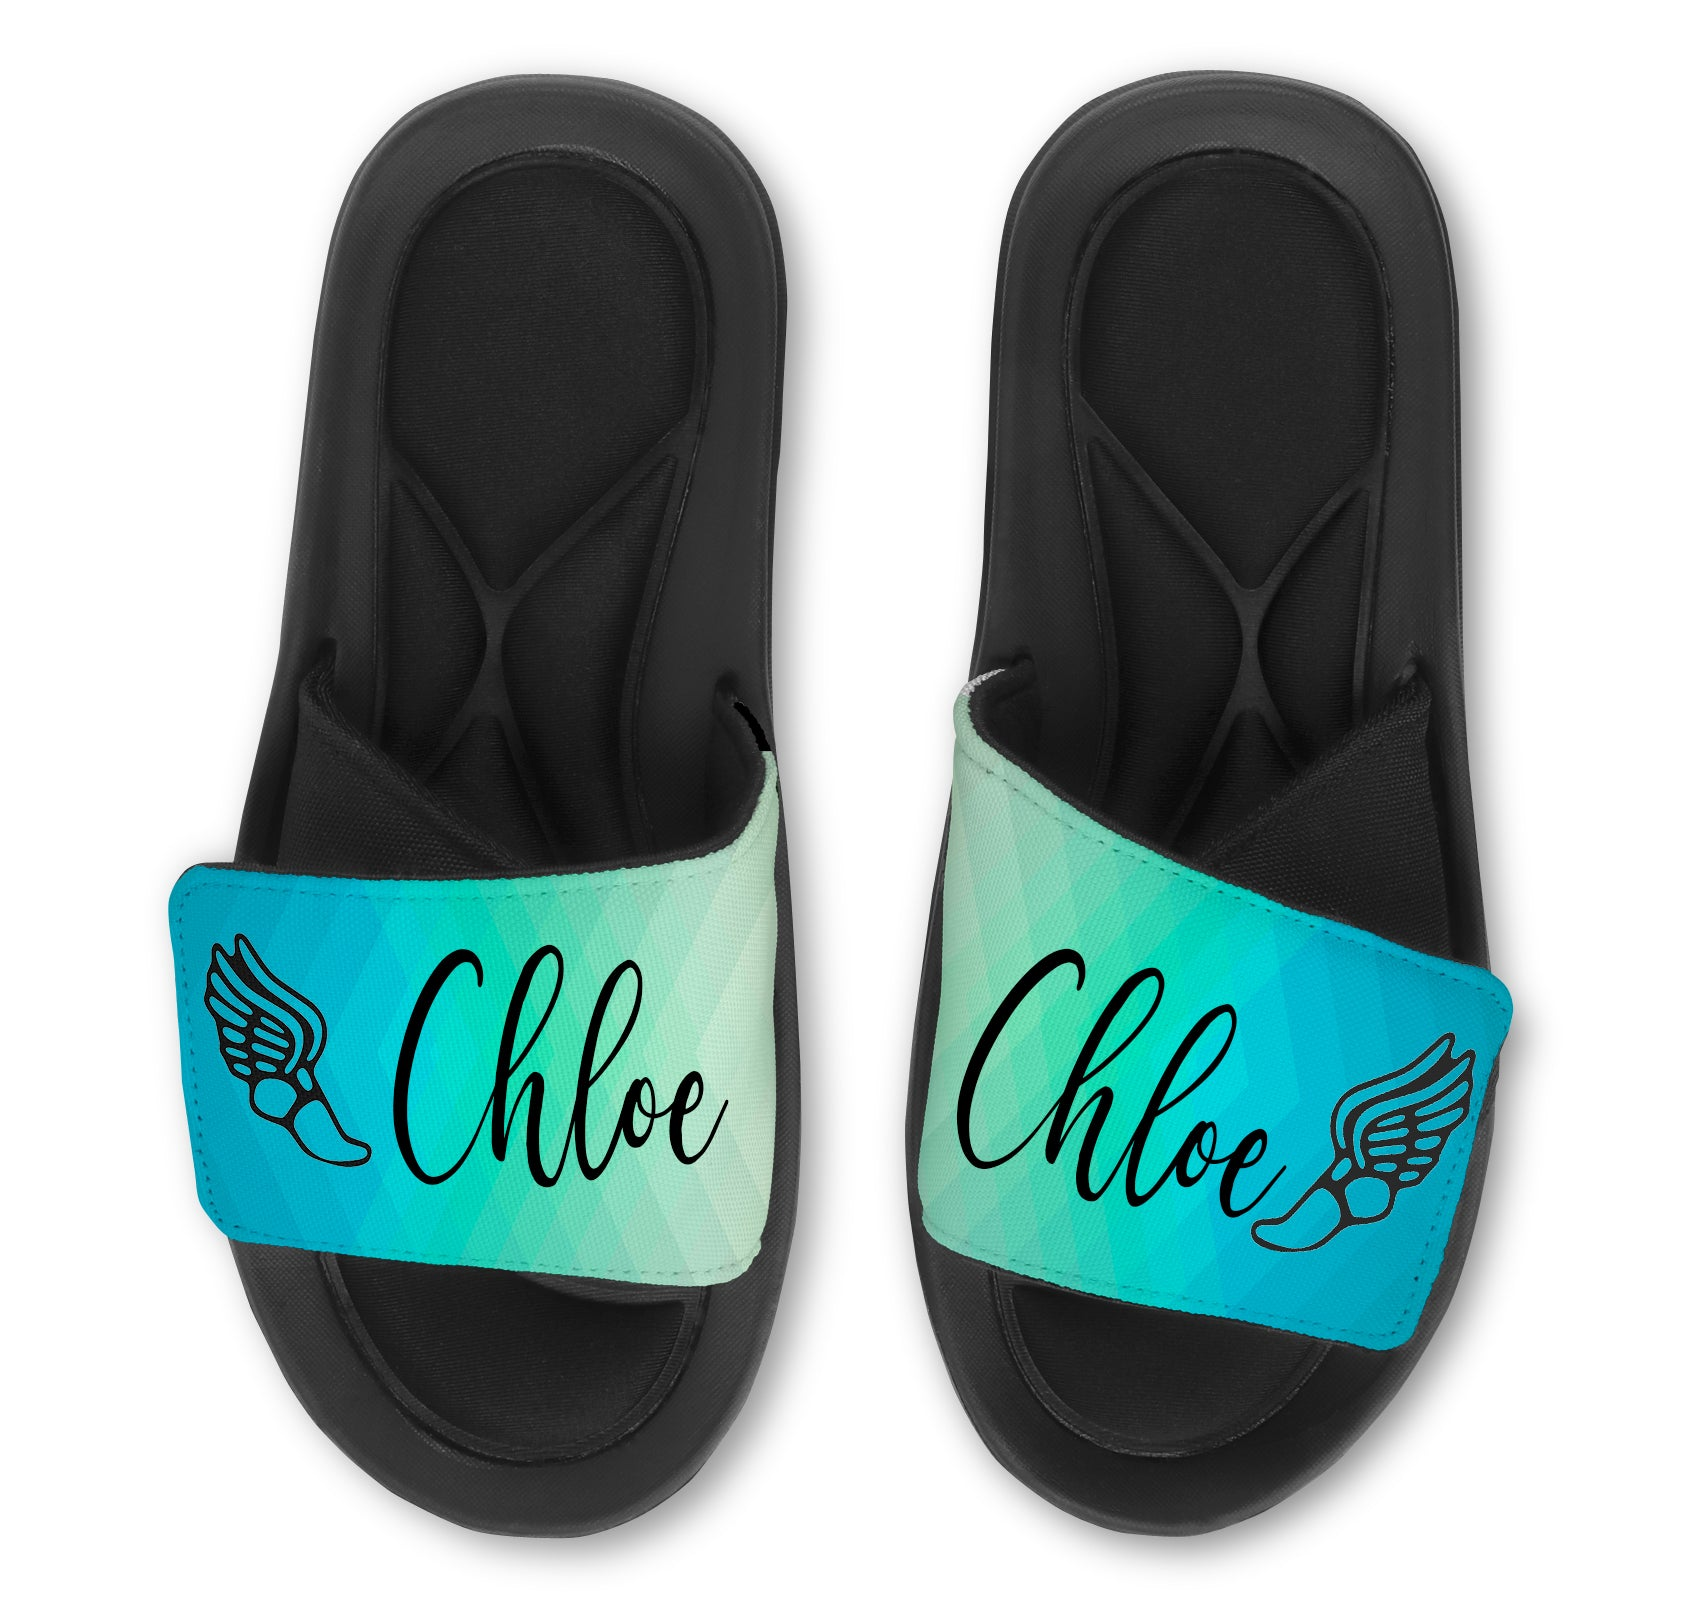 TRACK Abstract Custom Slides / Sandals - Choose your Background!